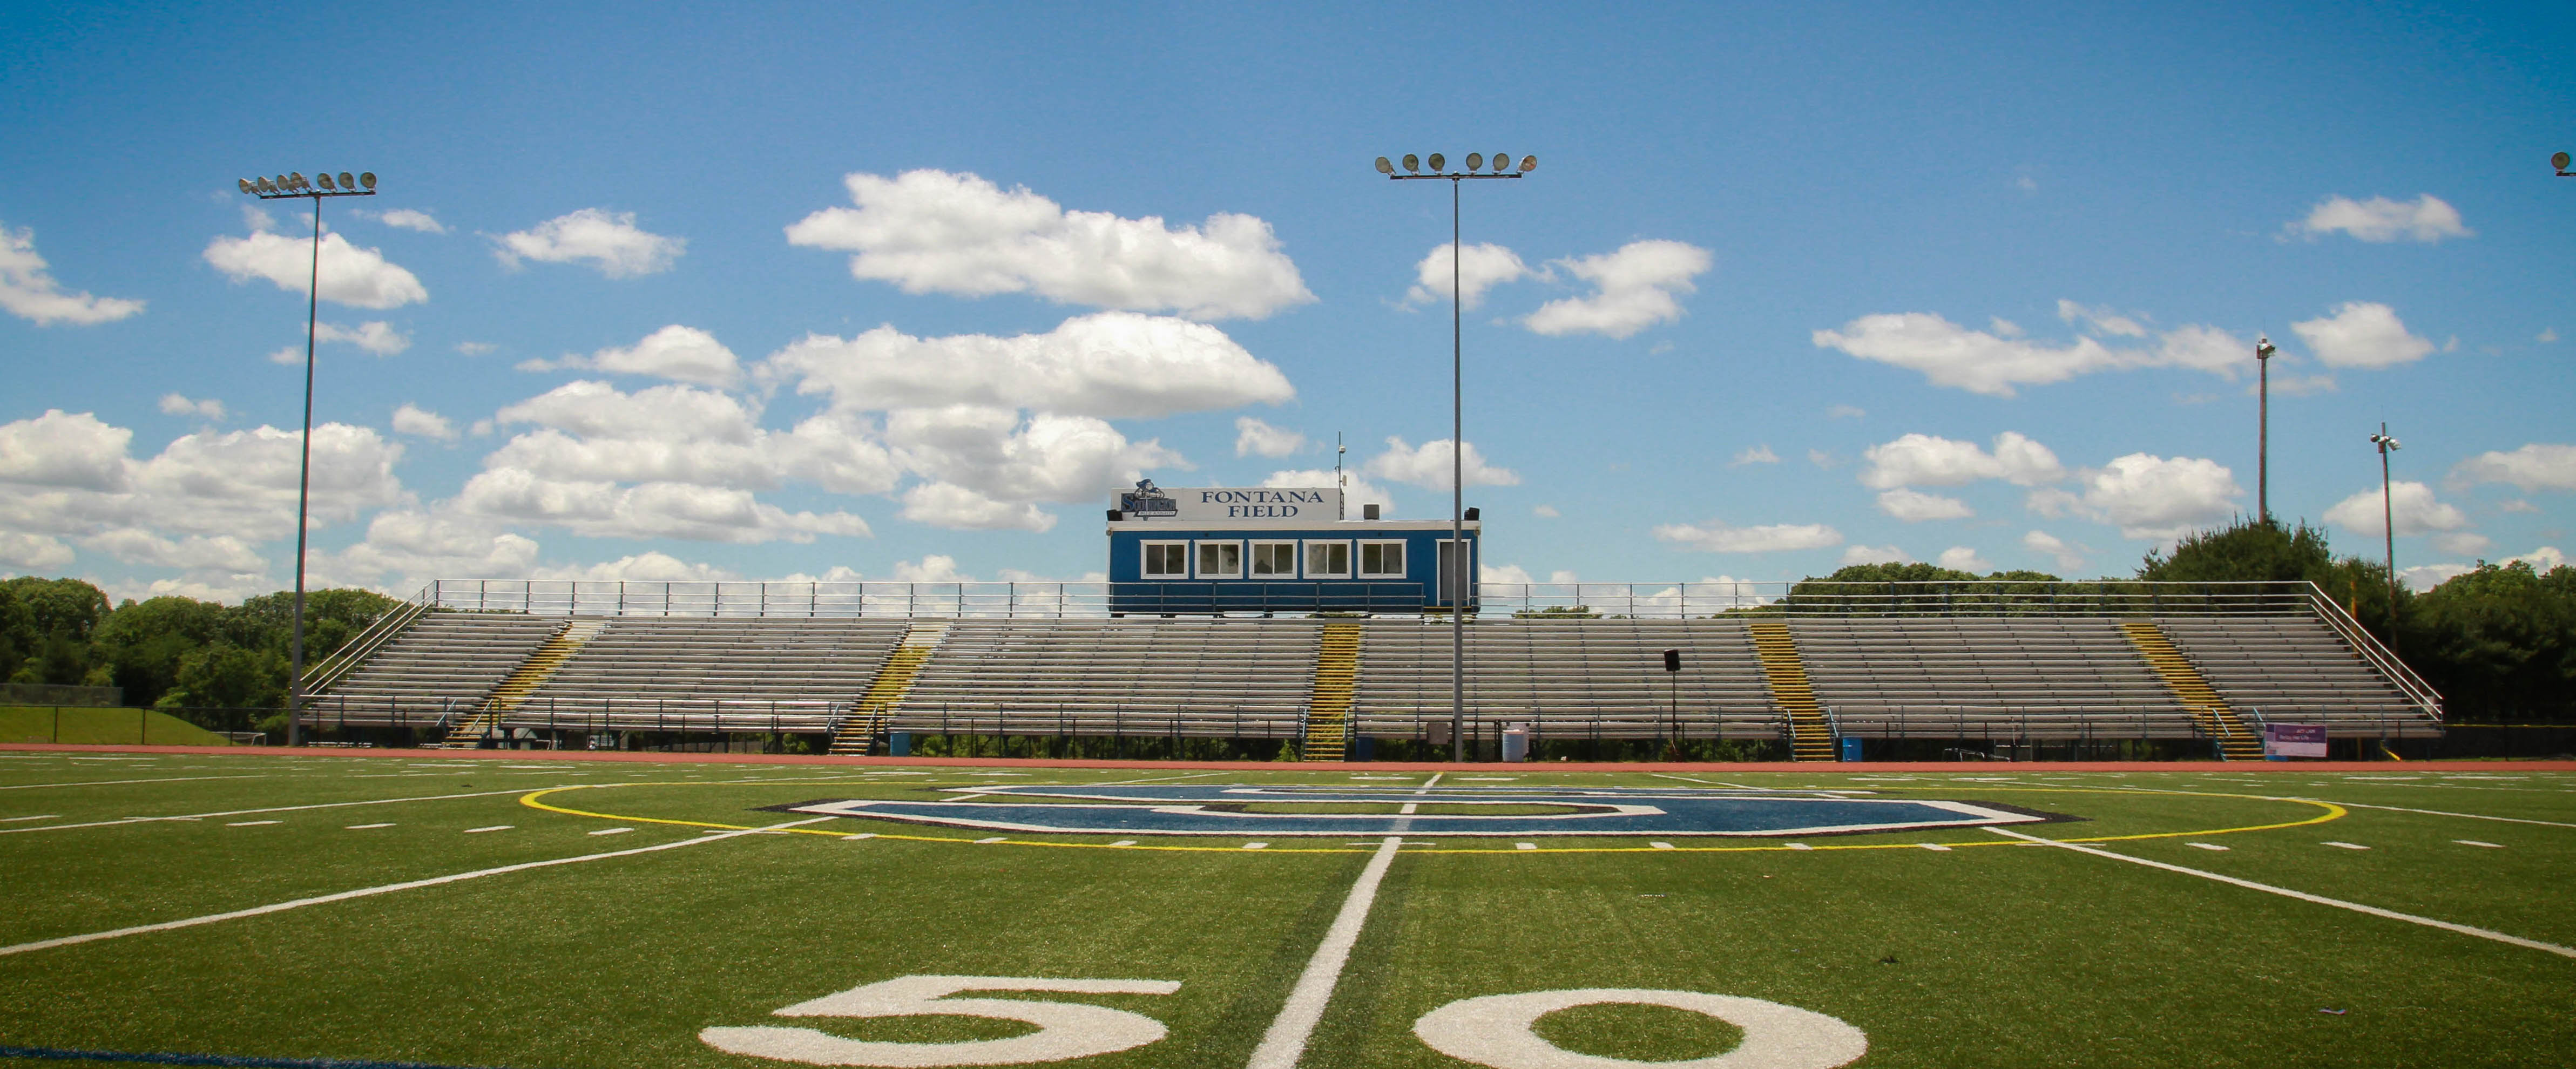 Southington High School Football, Football, Touchdown, Fontana Field